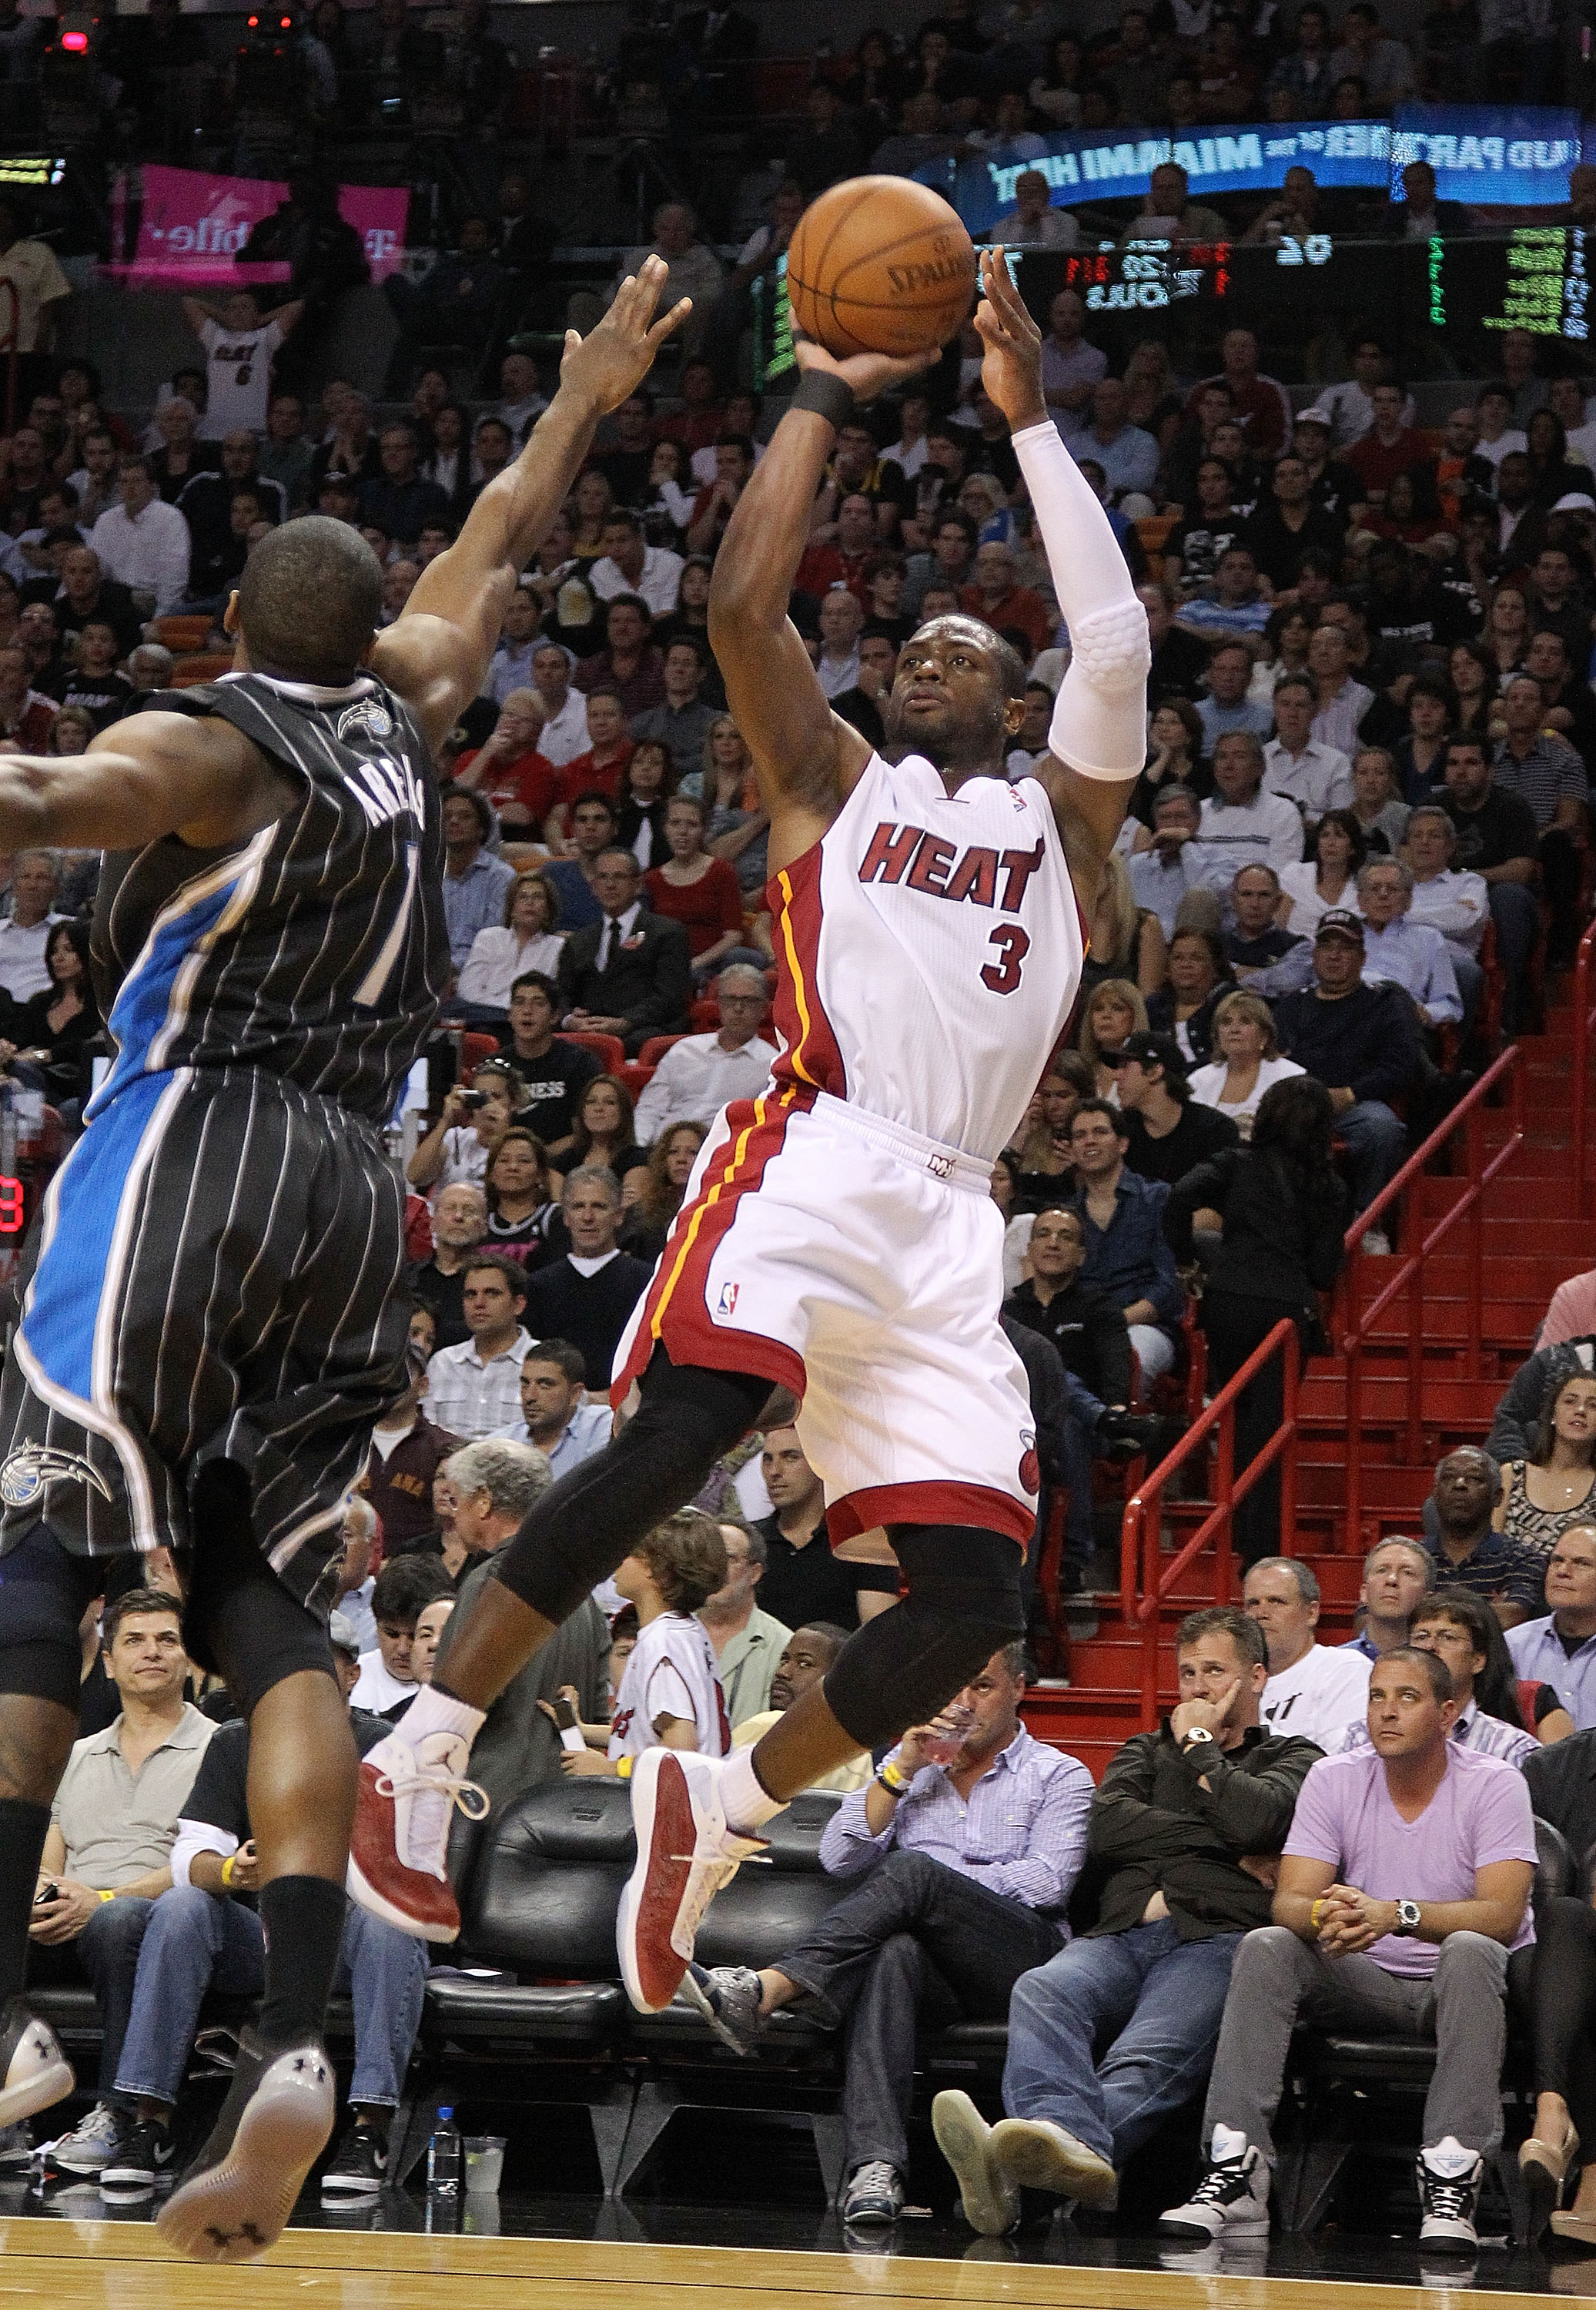 MIAMI, FL - MARCH 03:  Dwyane Wade #3 of the Miami Heat shoots over Gilbert Arenas #1 of the Orlando Magic during a game at American Airlines Arena on March 3, 2011 in Miami, Florida. NOTE TO USER: User expressly acknowledges and agrees that, by downloadi